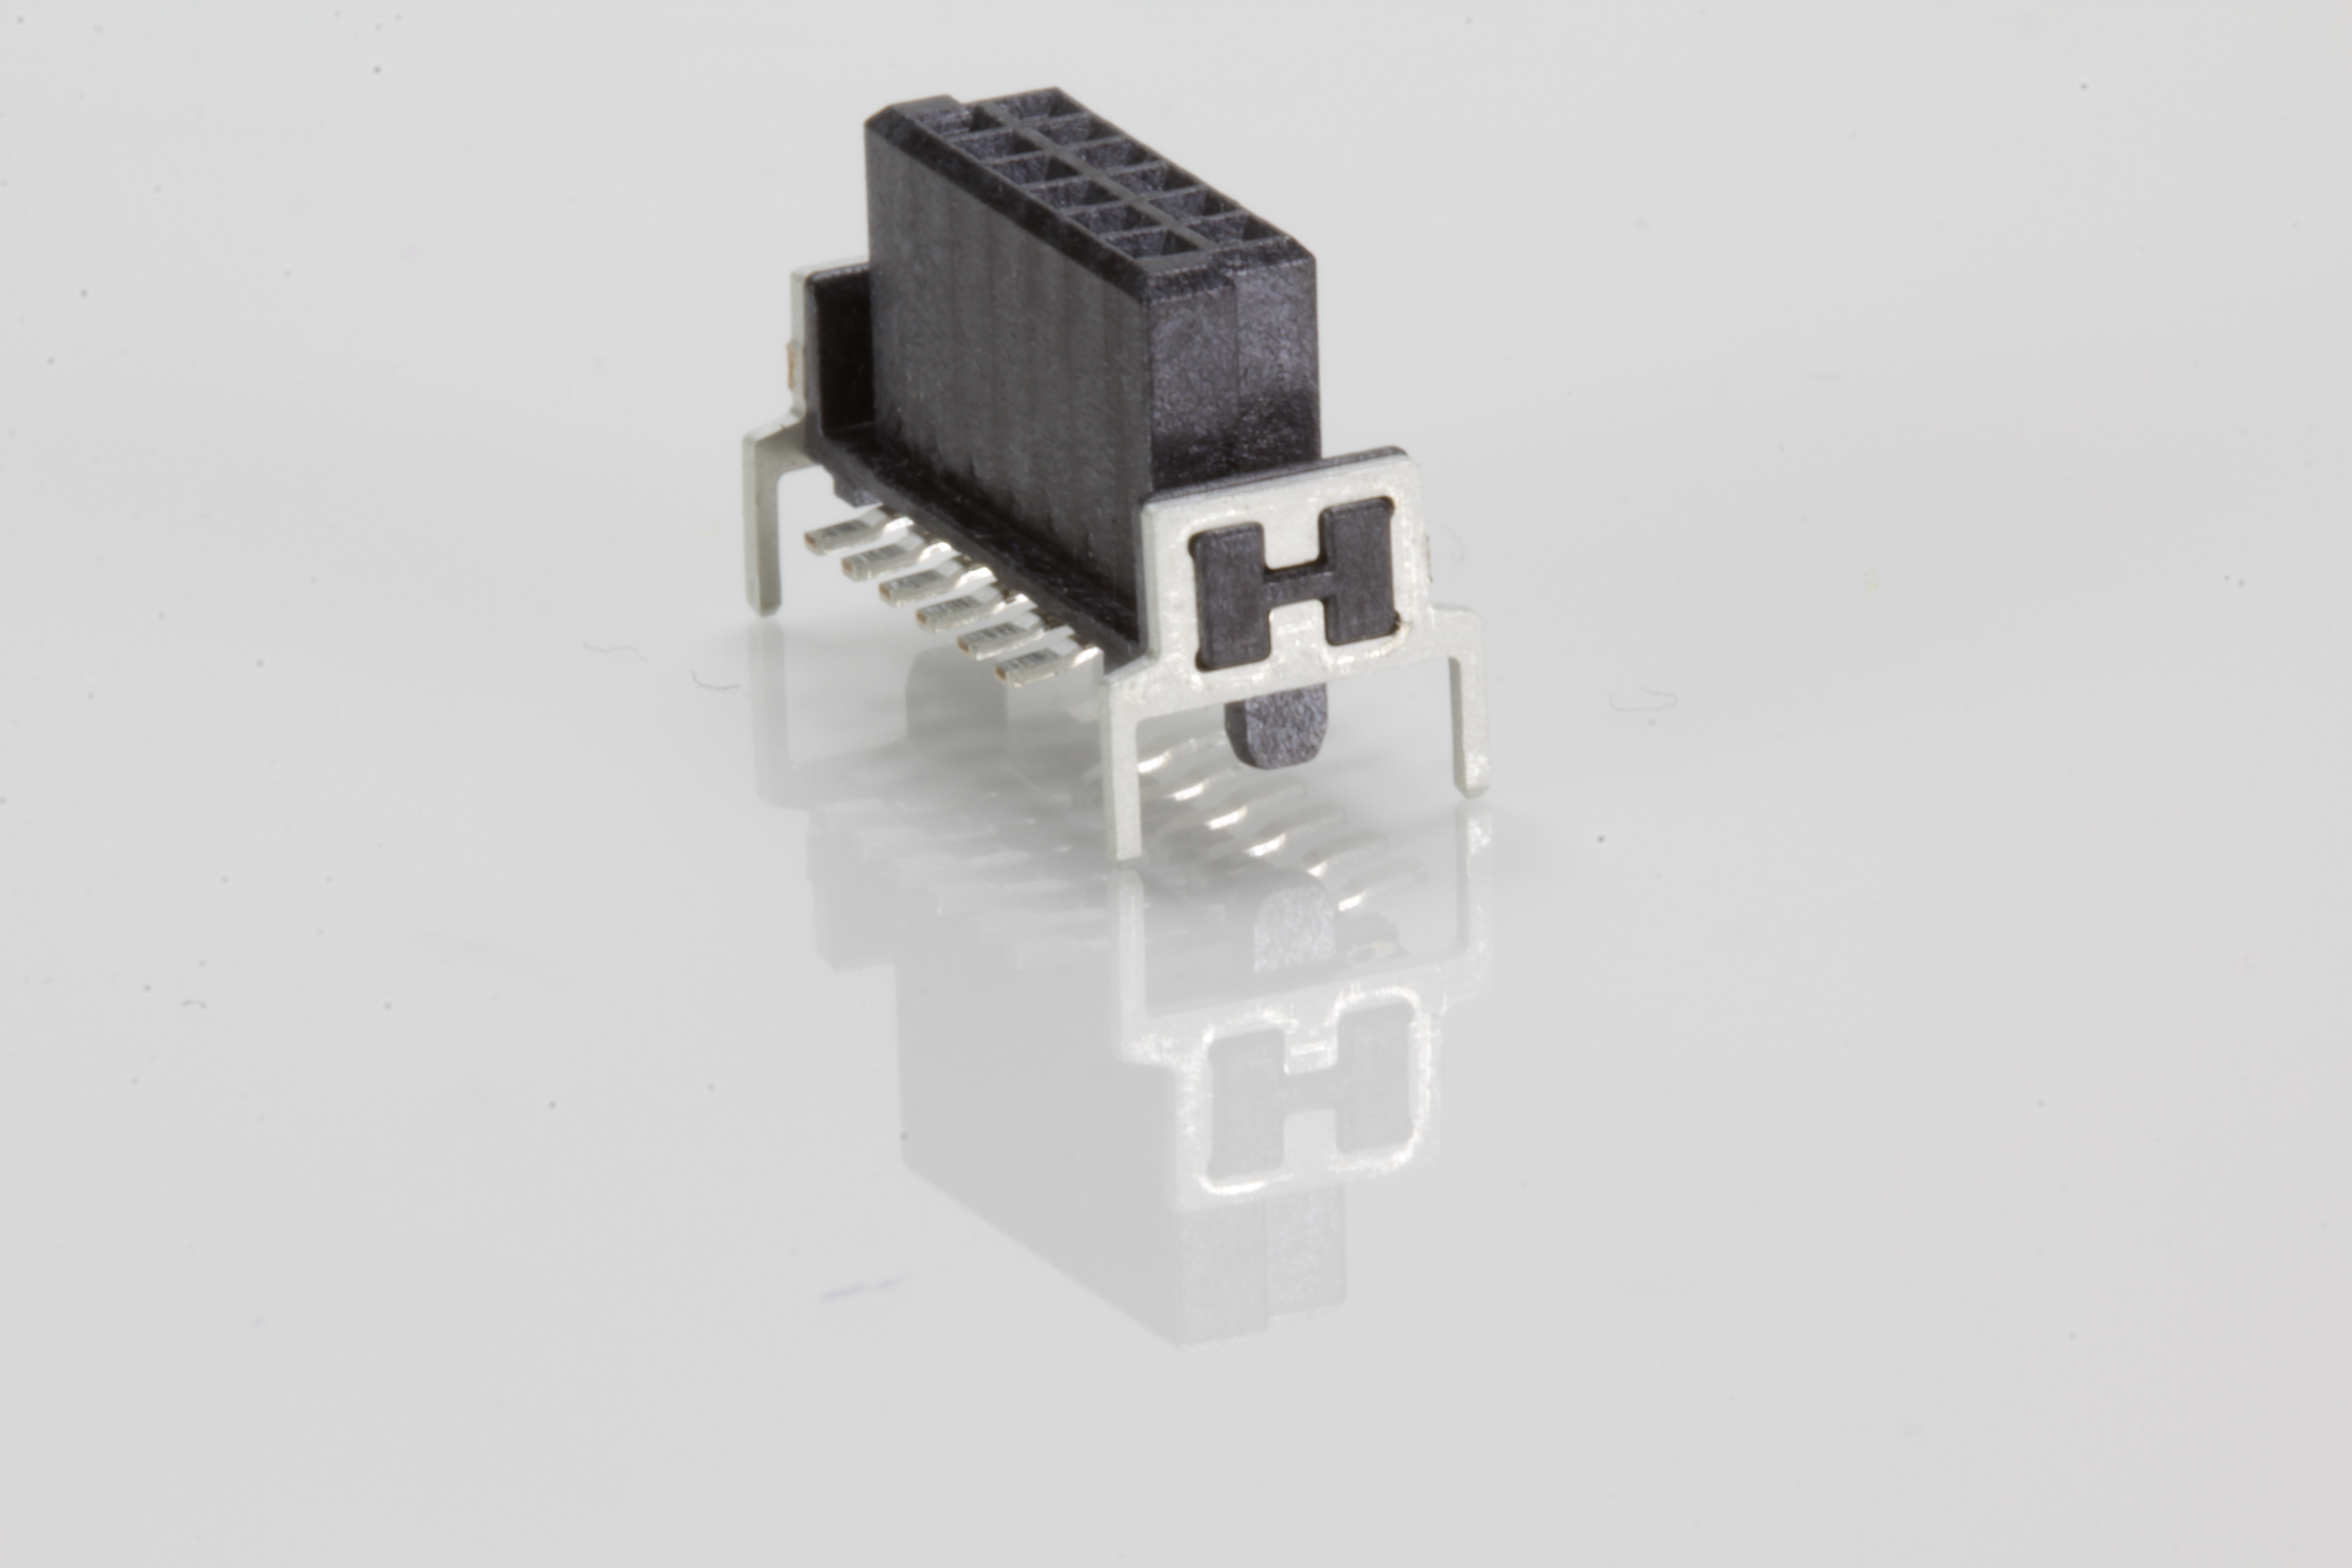 Pre Wired 510 Connector | Https Www Pressebox De Inaktiv Digital Energy Solutions Gmbh Co Kg